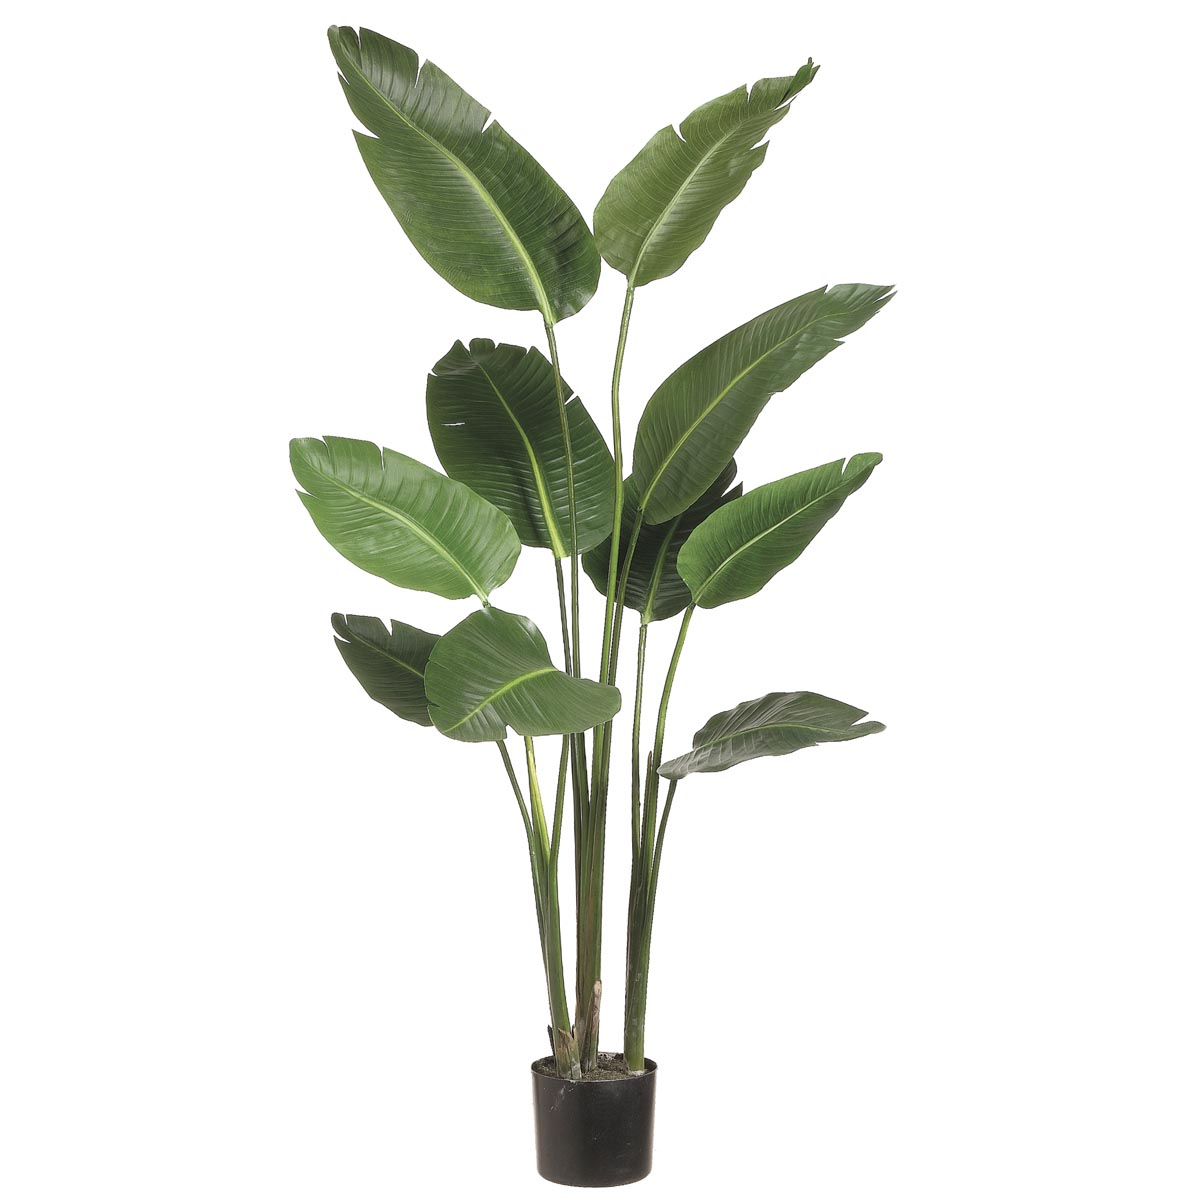 5 foot Bird of Paradise Plant: Potted | LTB605-GR